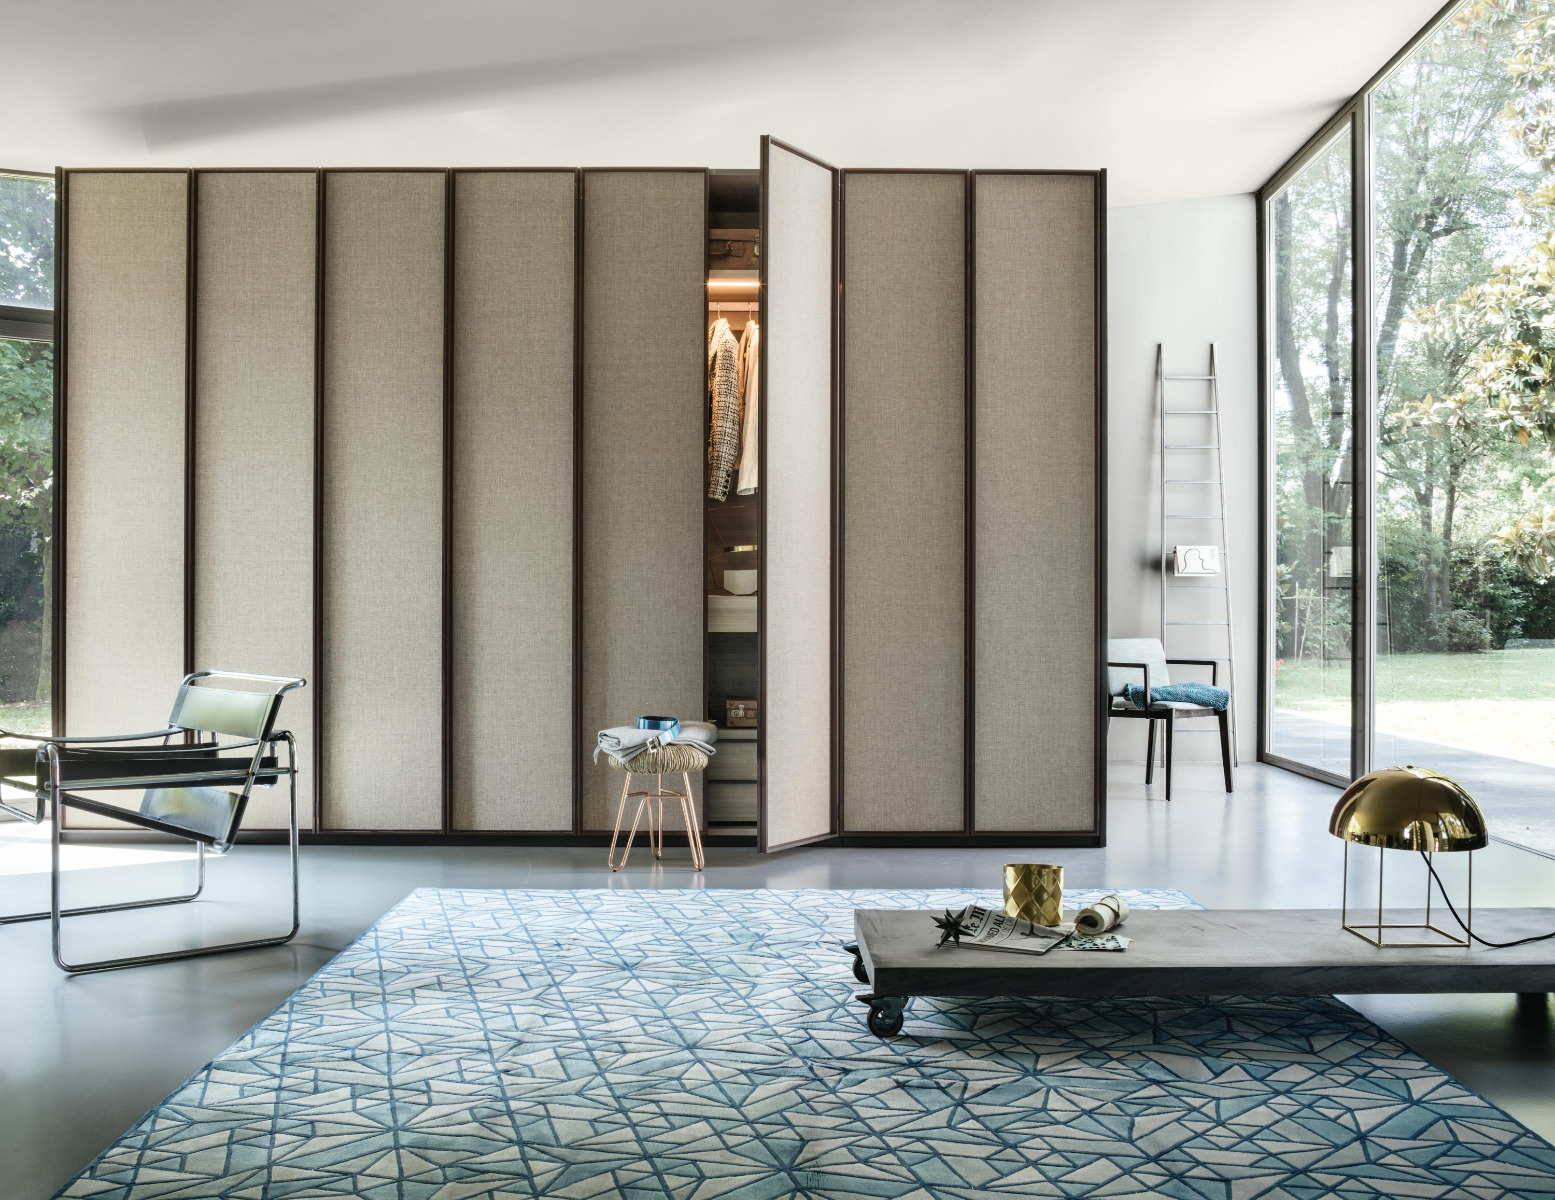 Dandy Wardrobe Lema An Elegant Furniture From Lema To Create An Classy Atmosphere With Lighting